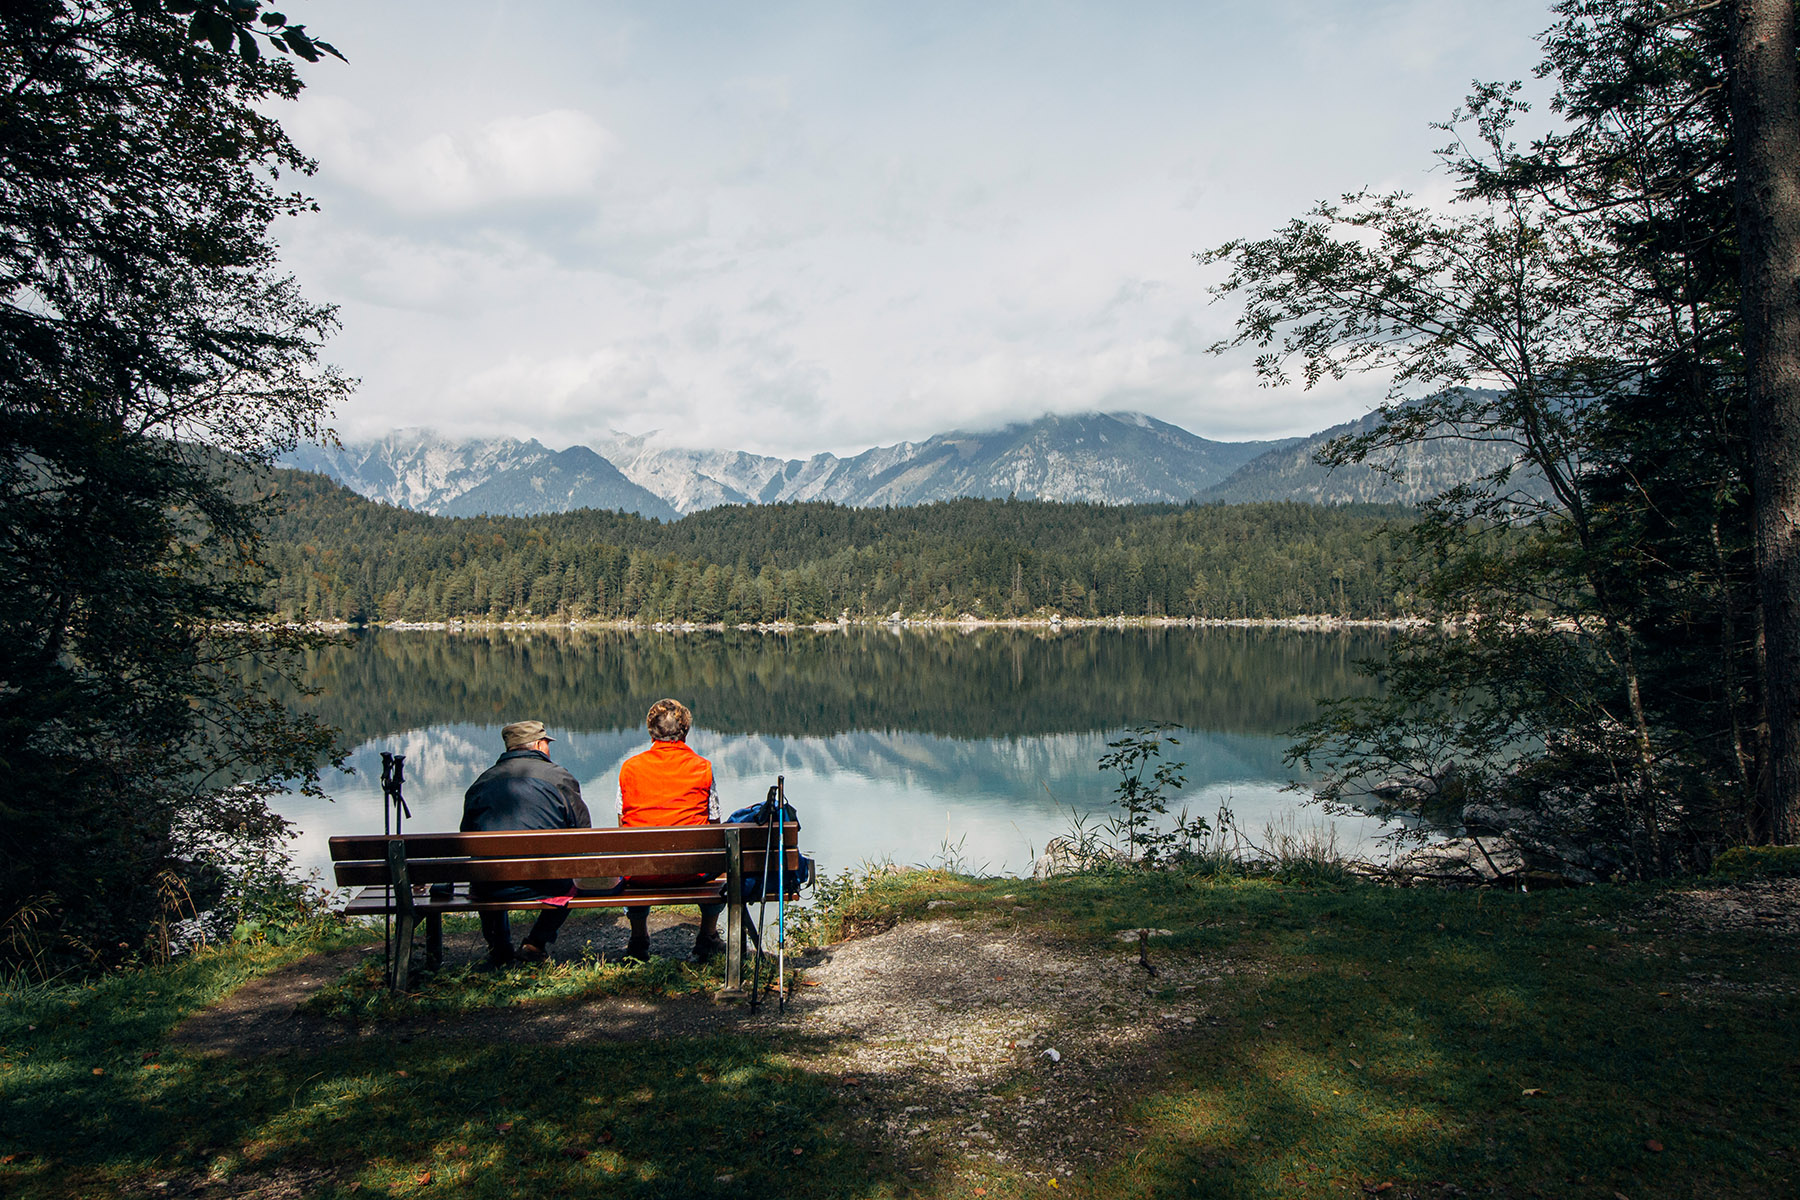 An elderly couple enjoys a view of the Eibsee